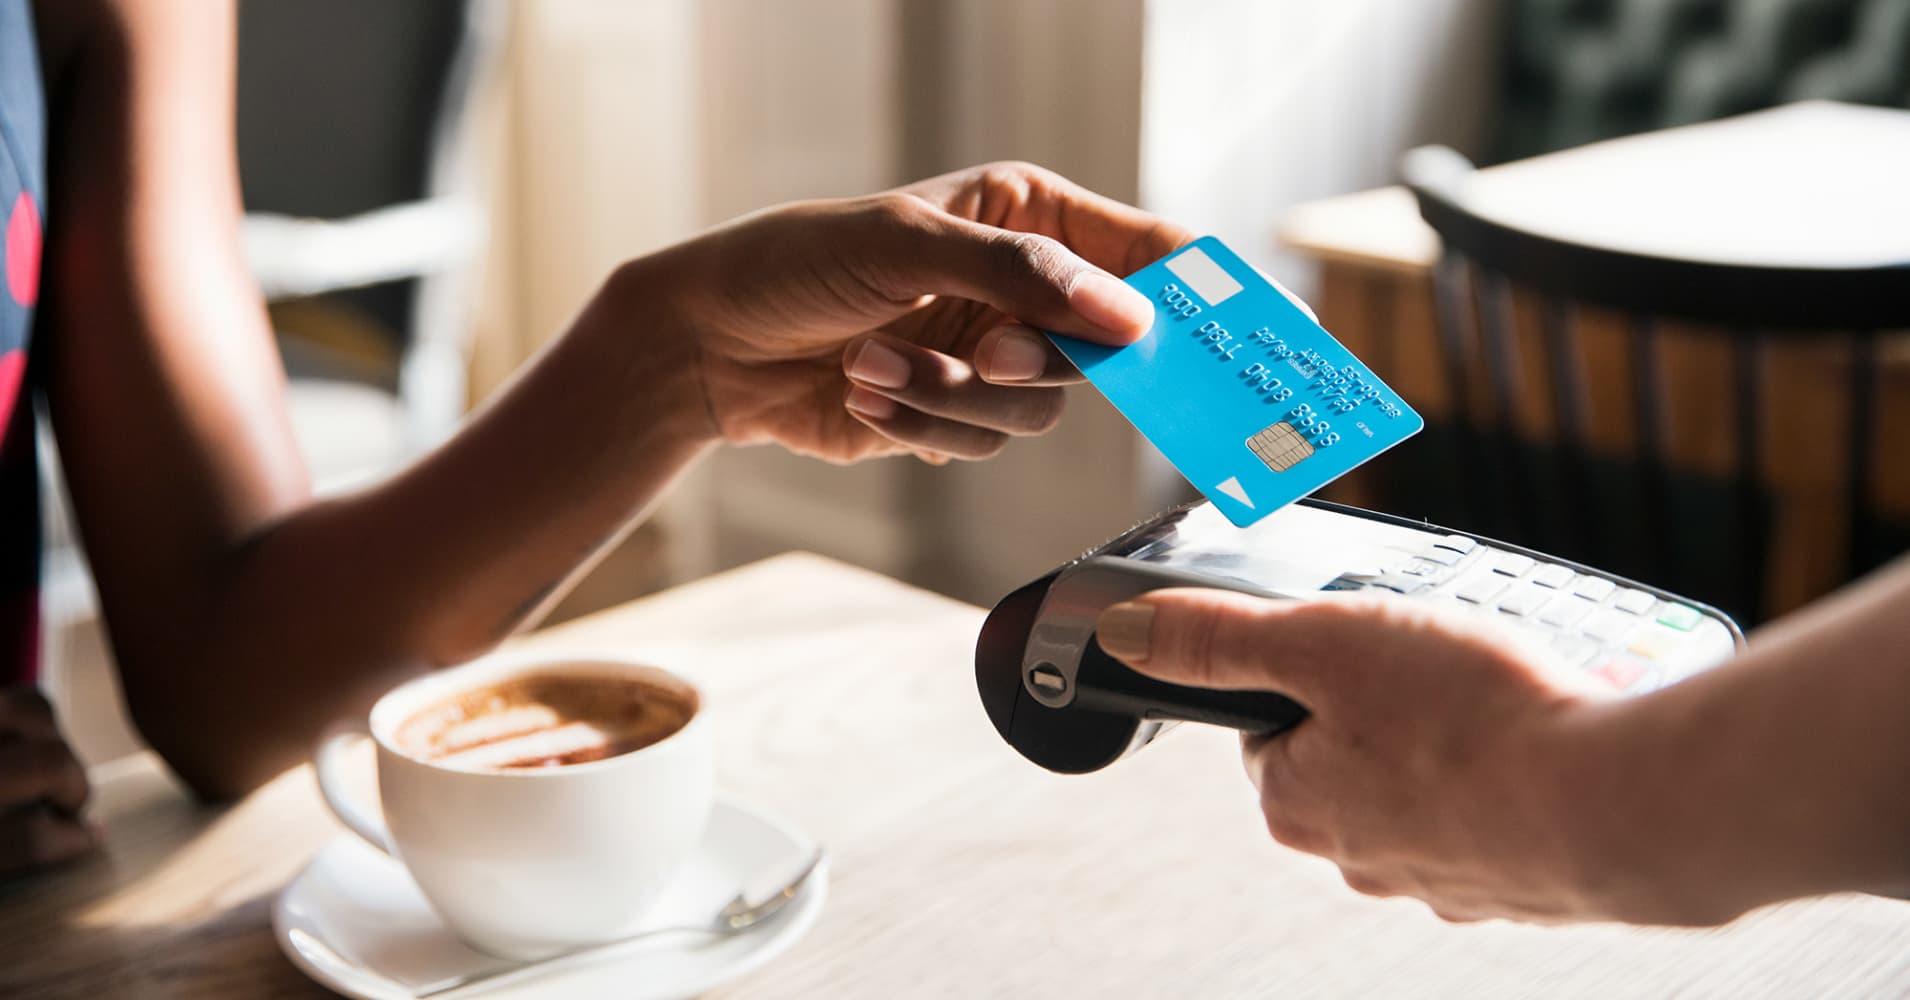 More People Are Using Credit Cards For Purchases Under $5. Supernatural Signs. Symptom Index Signs. Westermark Sign Signs. Computer Laboratory Signs Of Stroke. Child Cartoon Signs. Dec 11 Signs Of Stroke. University Signs Of Stroke. Reuptake Inhibitors Signs